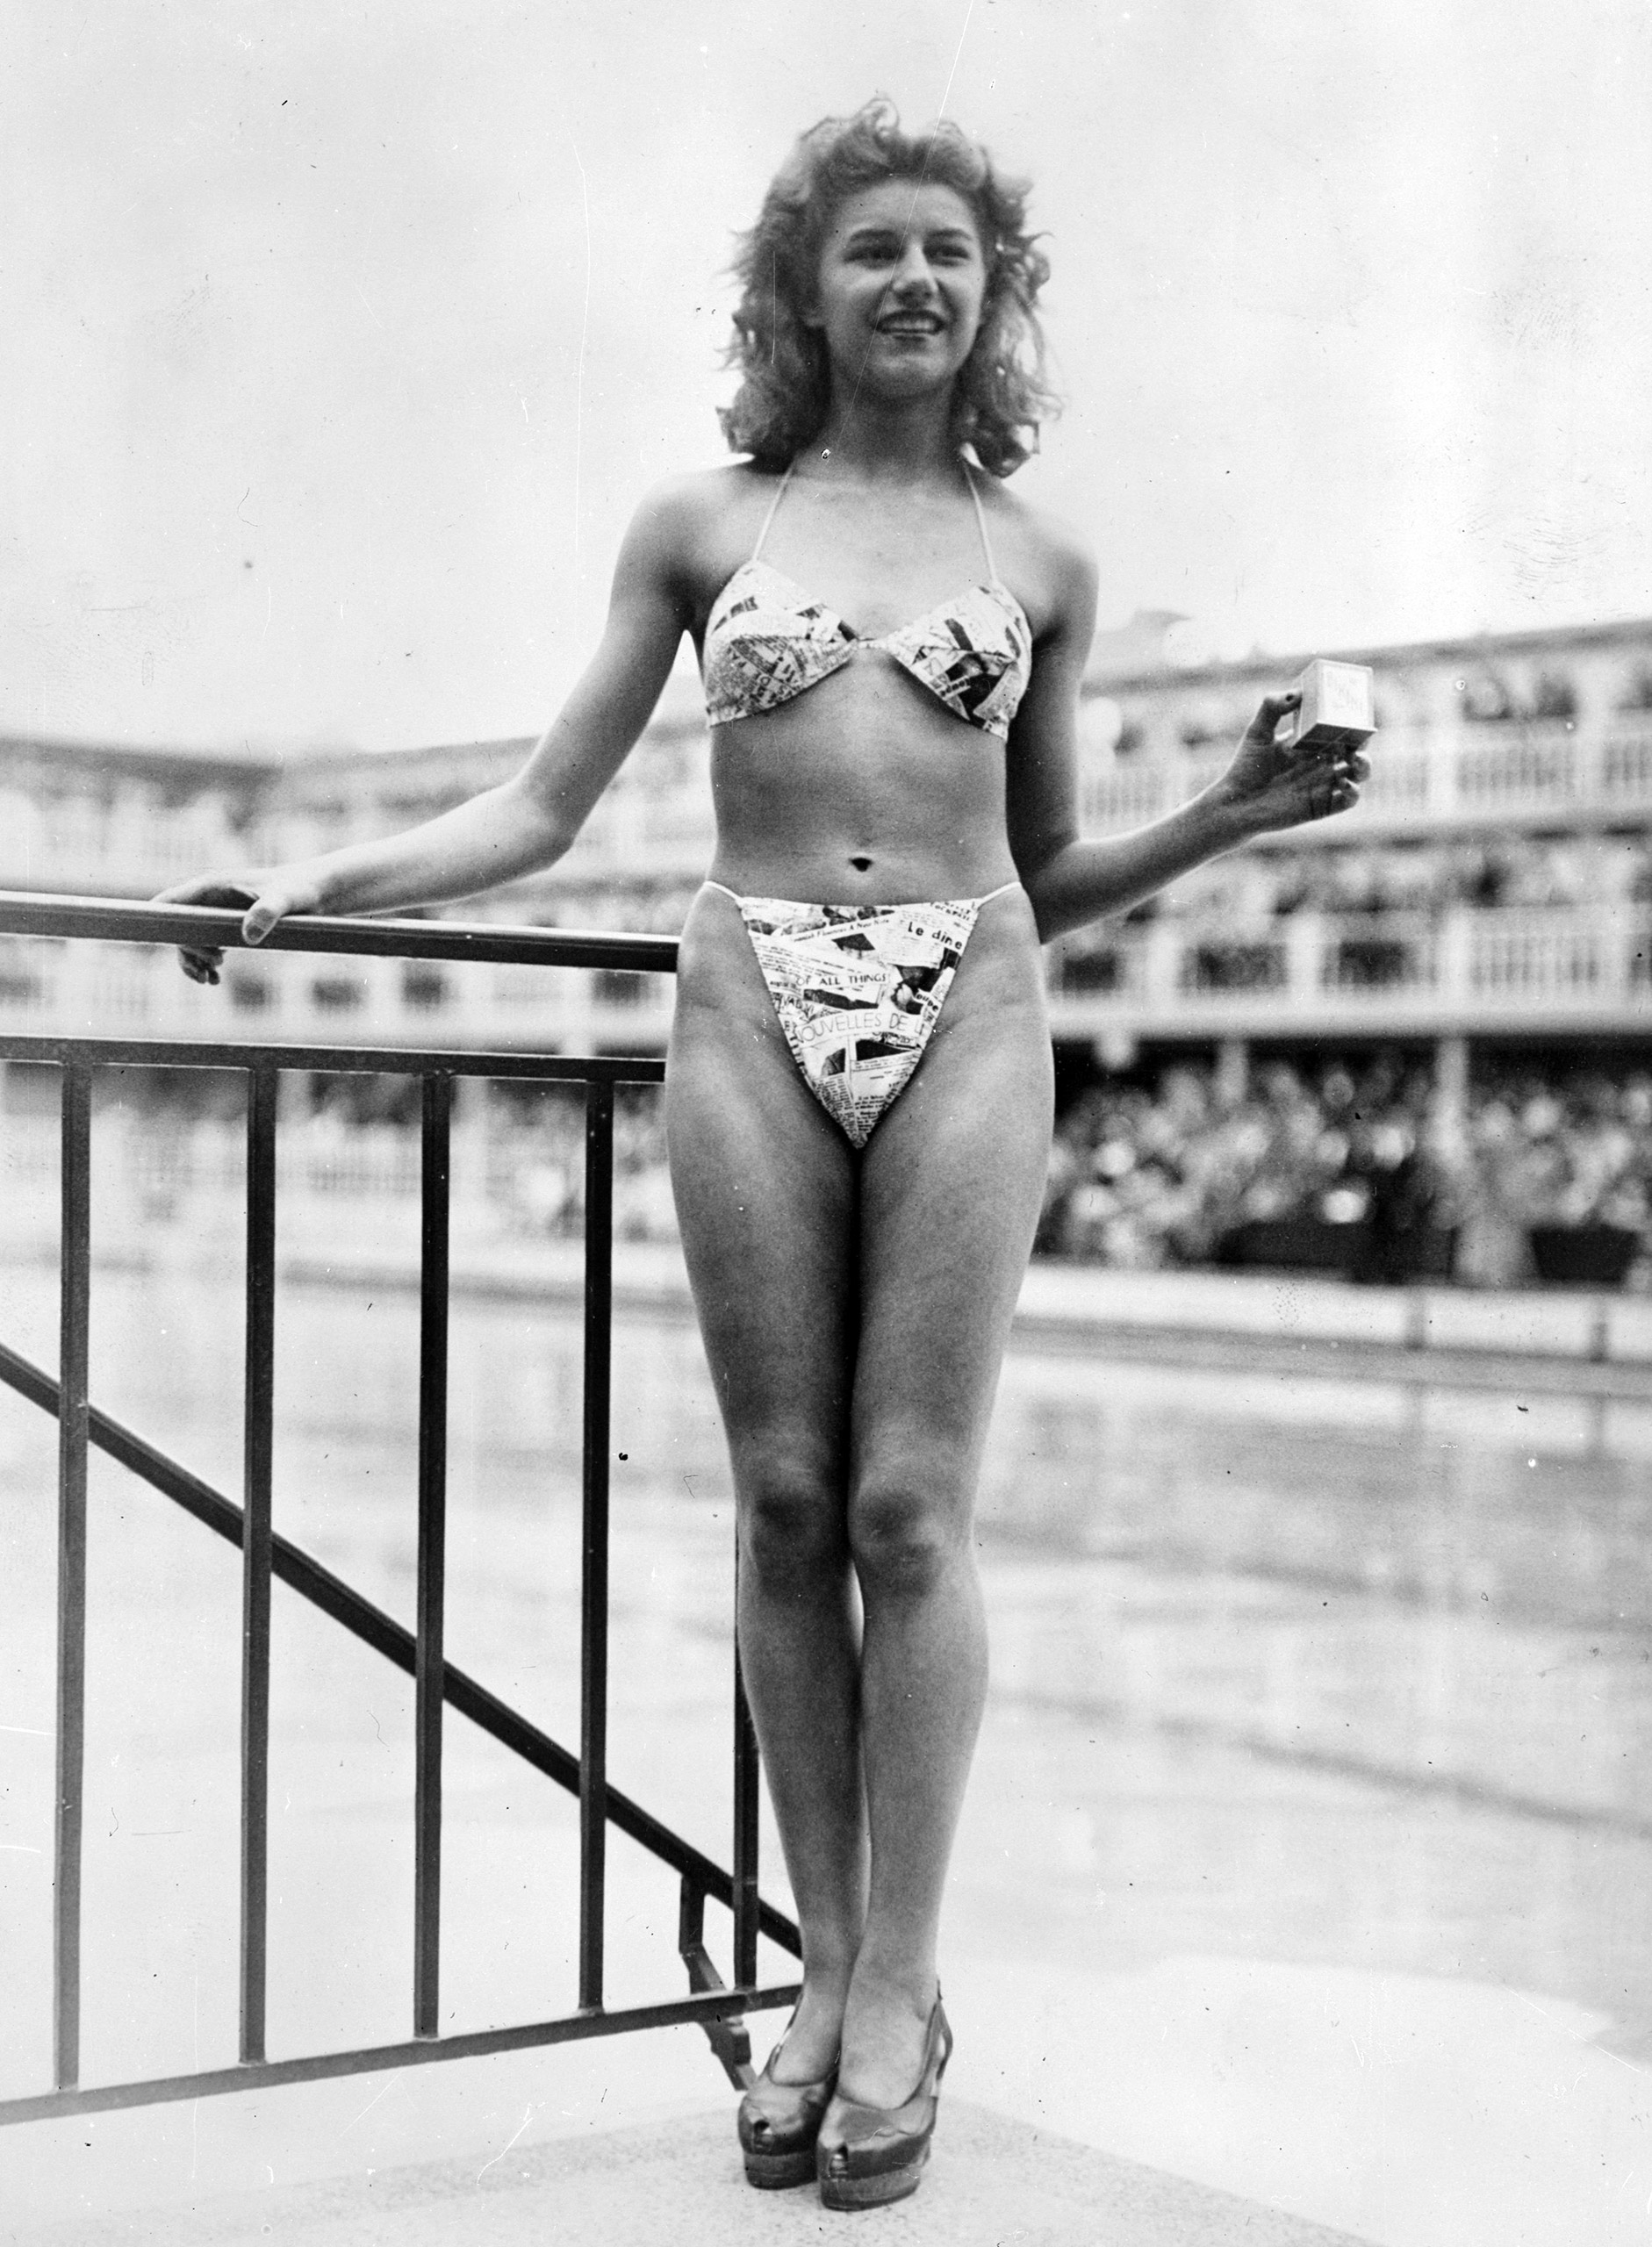 The new 'Bikini' swimming costume caused a sensation at a beauty contest at the Molitor swimming pool in Paris. Designer Louis Reard was unable to find a 'respectable' model for his costume and the job of displaying it went to 19-year-old Micheline Bernardini, a nude dancer from the Casino de Paris. She is holding a small box into which the entire costume can be packed. Celebrated as the first bikini, Luard's design came a few months after a similar two-piece design was produced by French designer Jacques Heim.